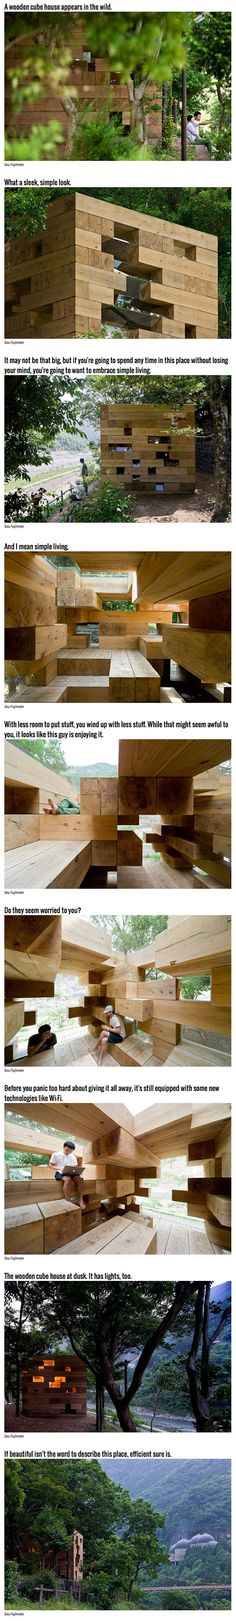 This Stack Of Wood Is So Much More Than Most People Realize...And It is Epic.